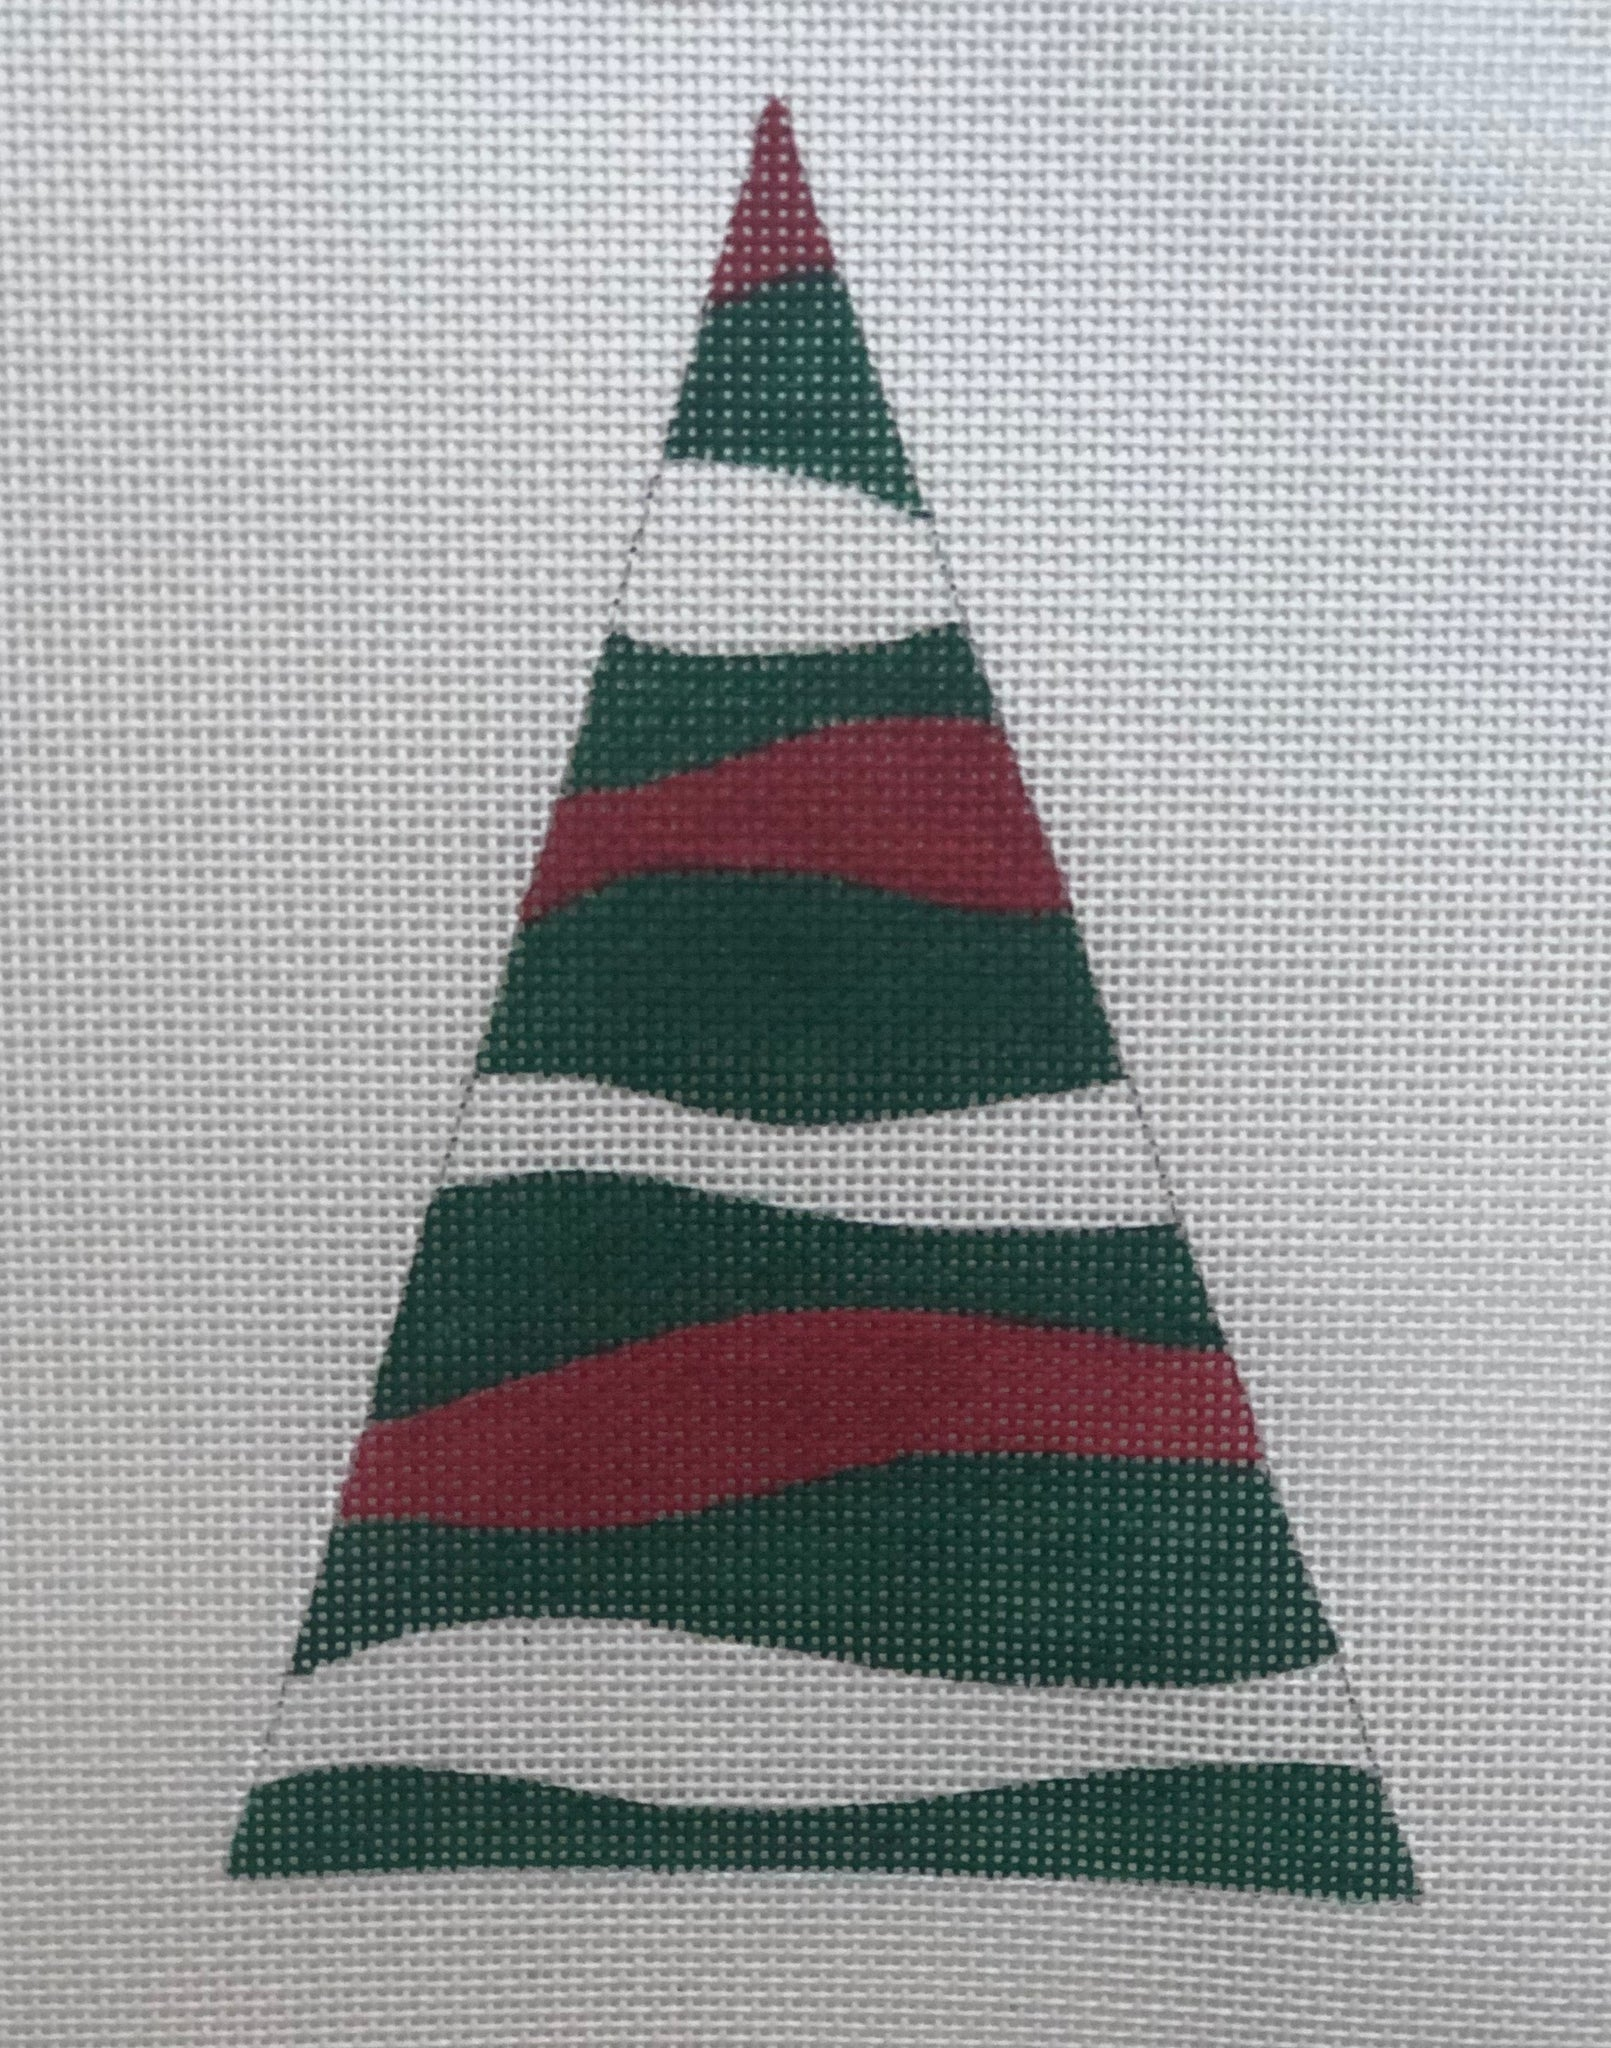 CHRISTMAS TREE WITH STITCH GUIDE tre001